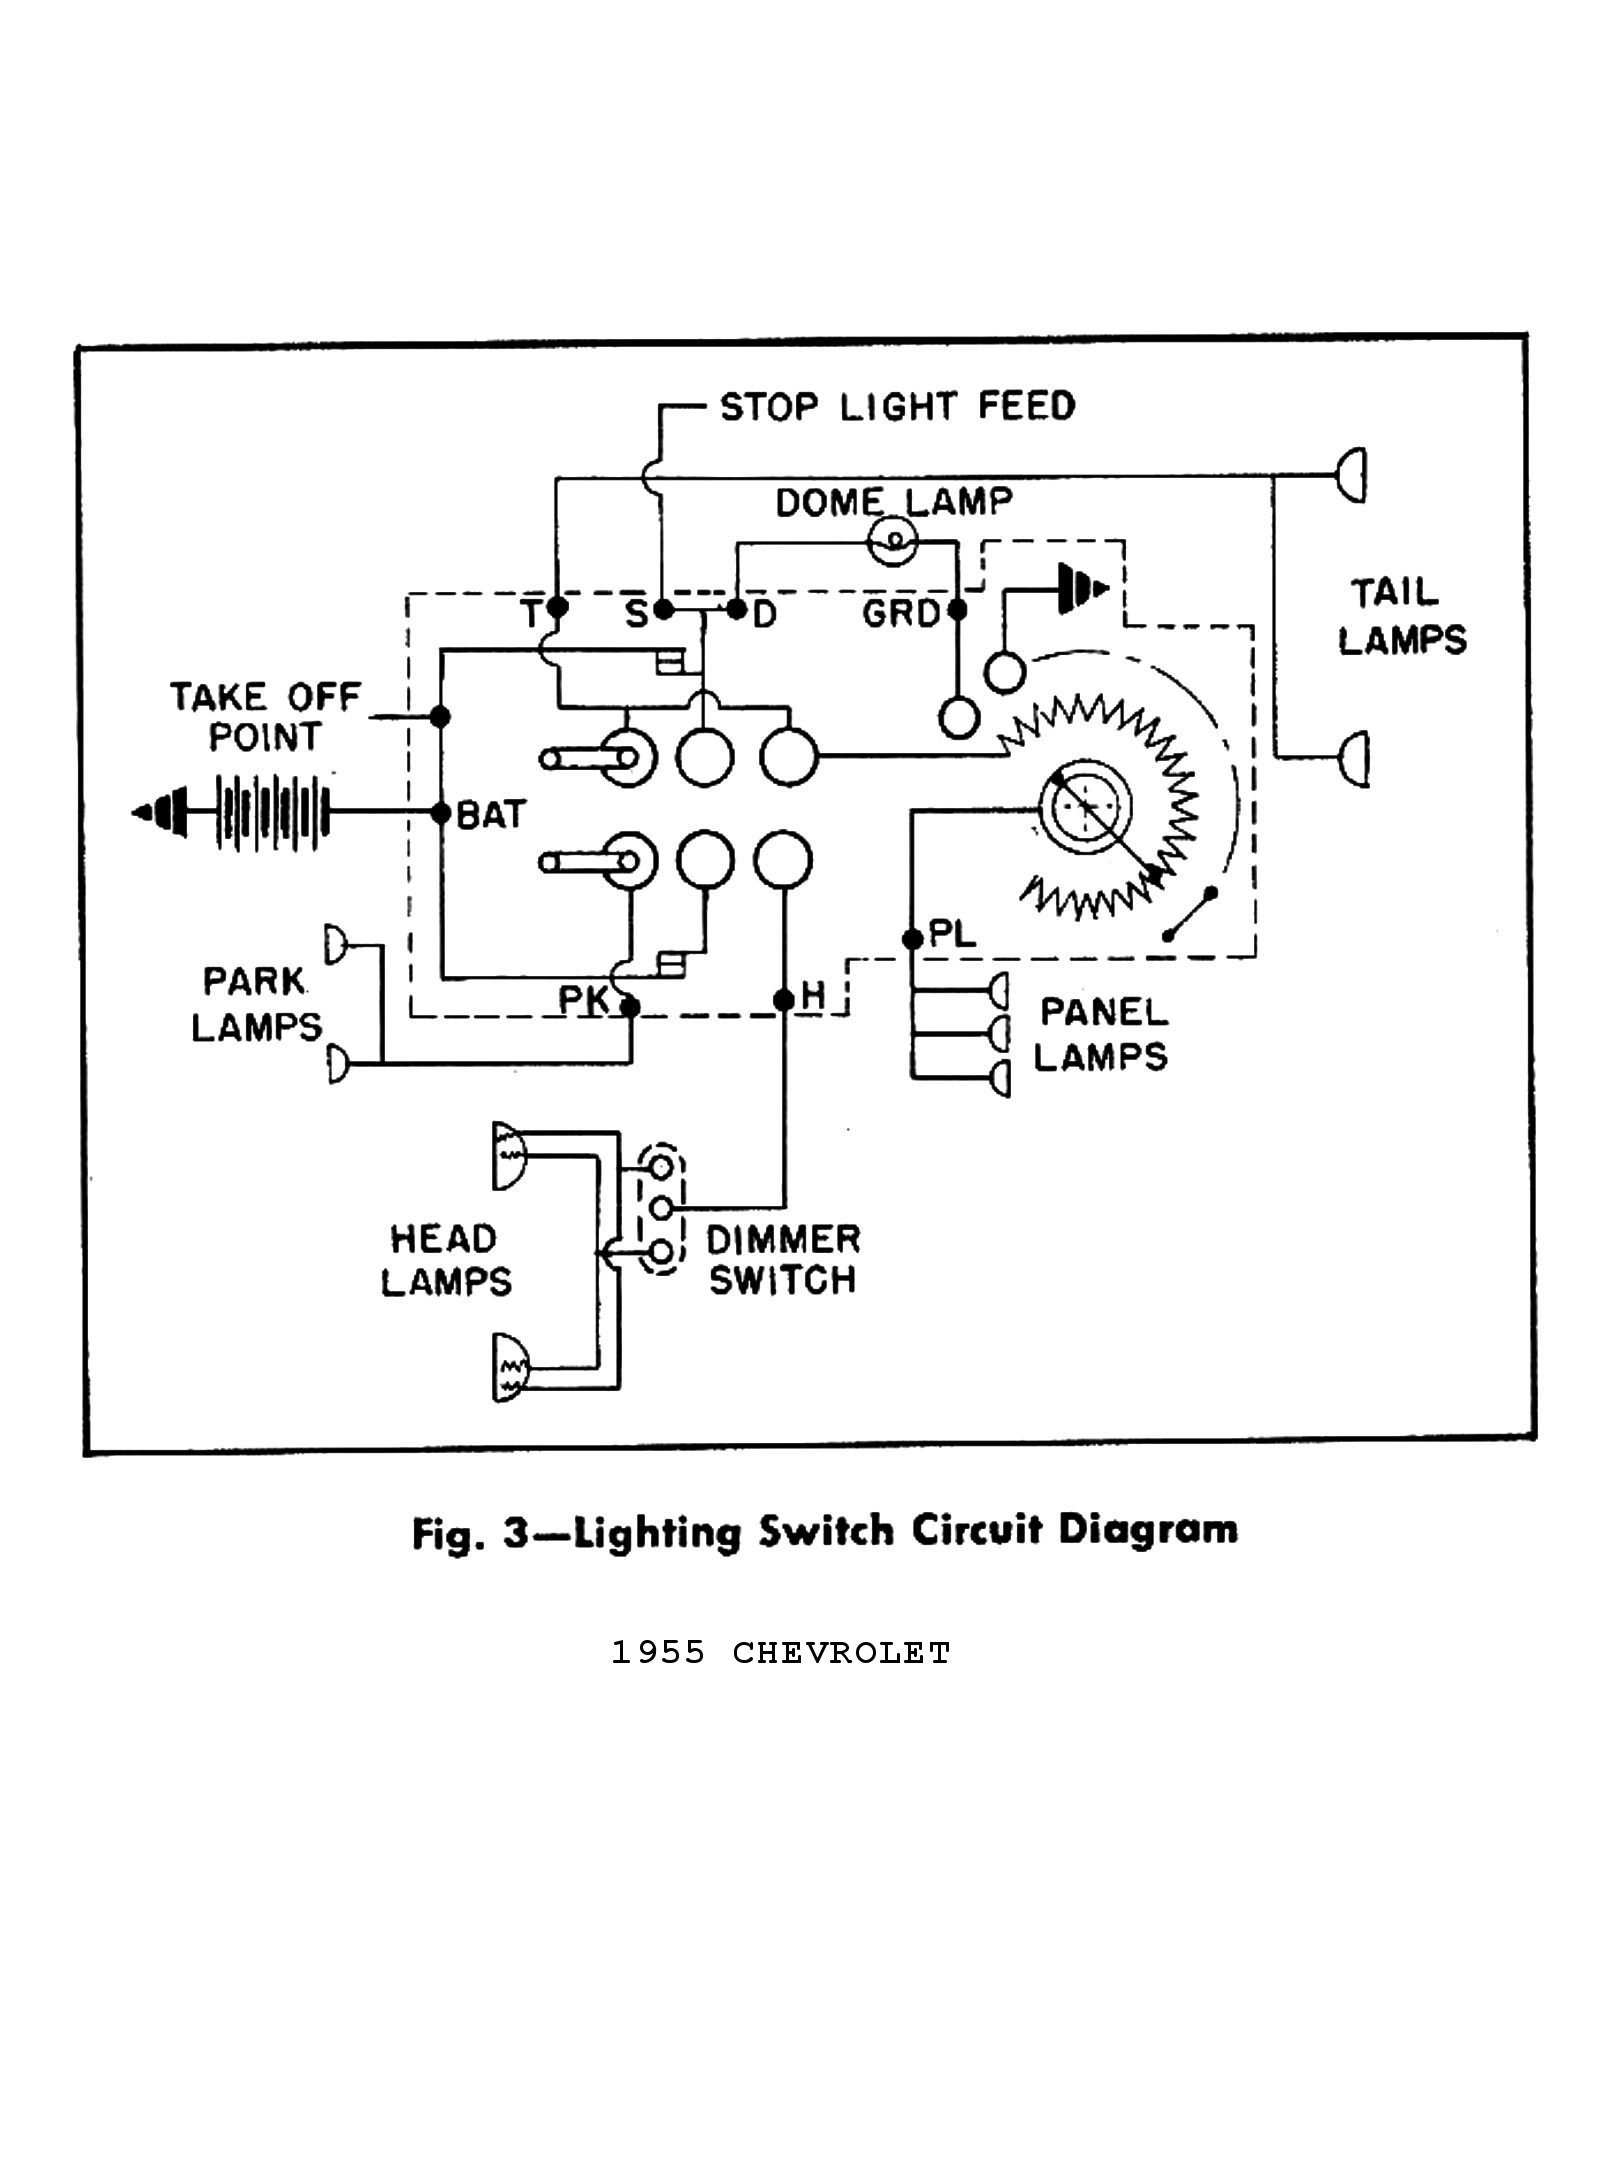 1970 Ford Light Switch Wiring Diagram Schematic Schema Diagrams Gmc Steering Column Gm Headlight Bookmark About U2022